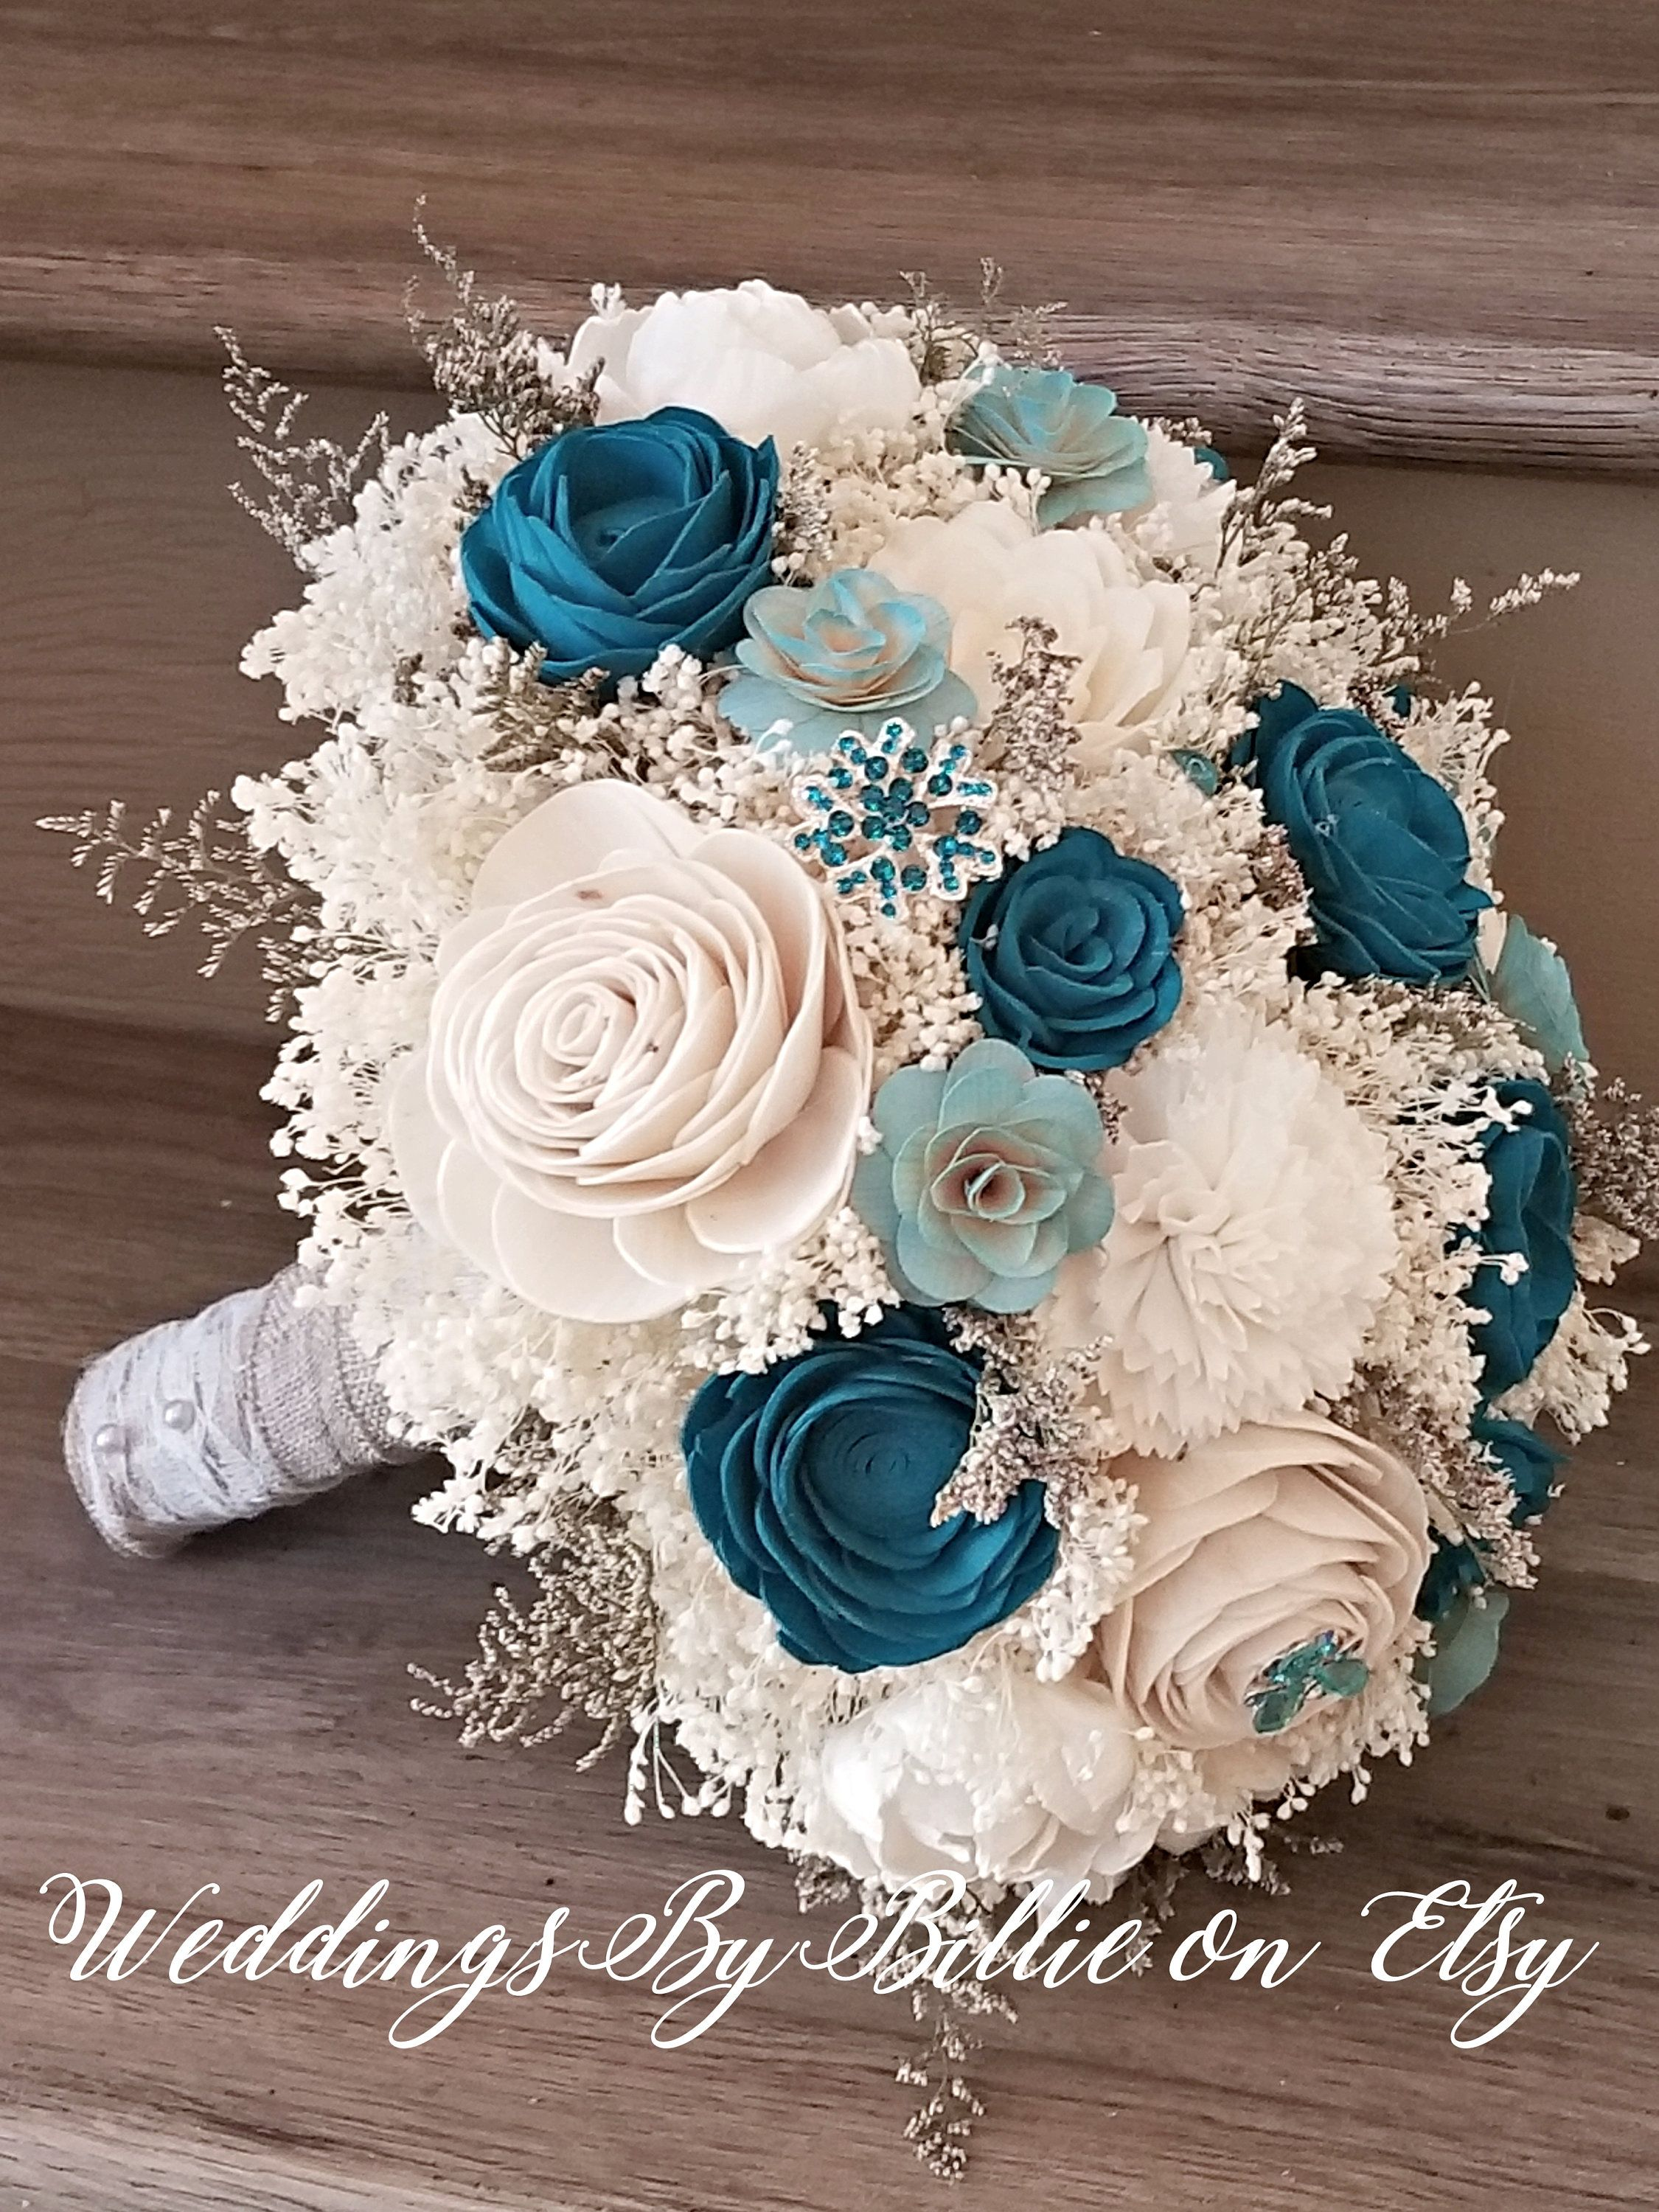 Turquoise Teal Sola Flower Bouquet Sola Flowers Teal Wedding Etsy Sola Flower Bouquet Teal Wedding Flowers Teal Wedding Bouquet